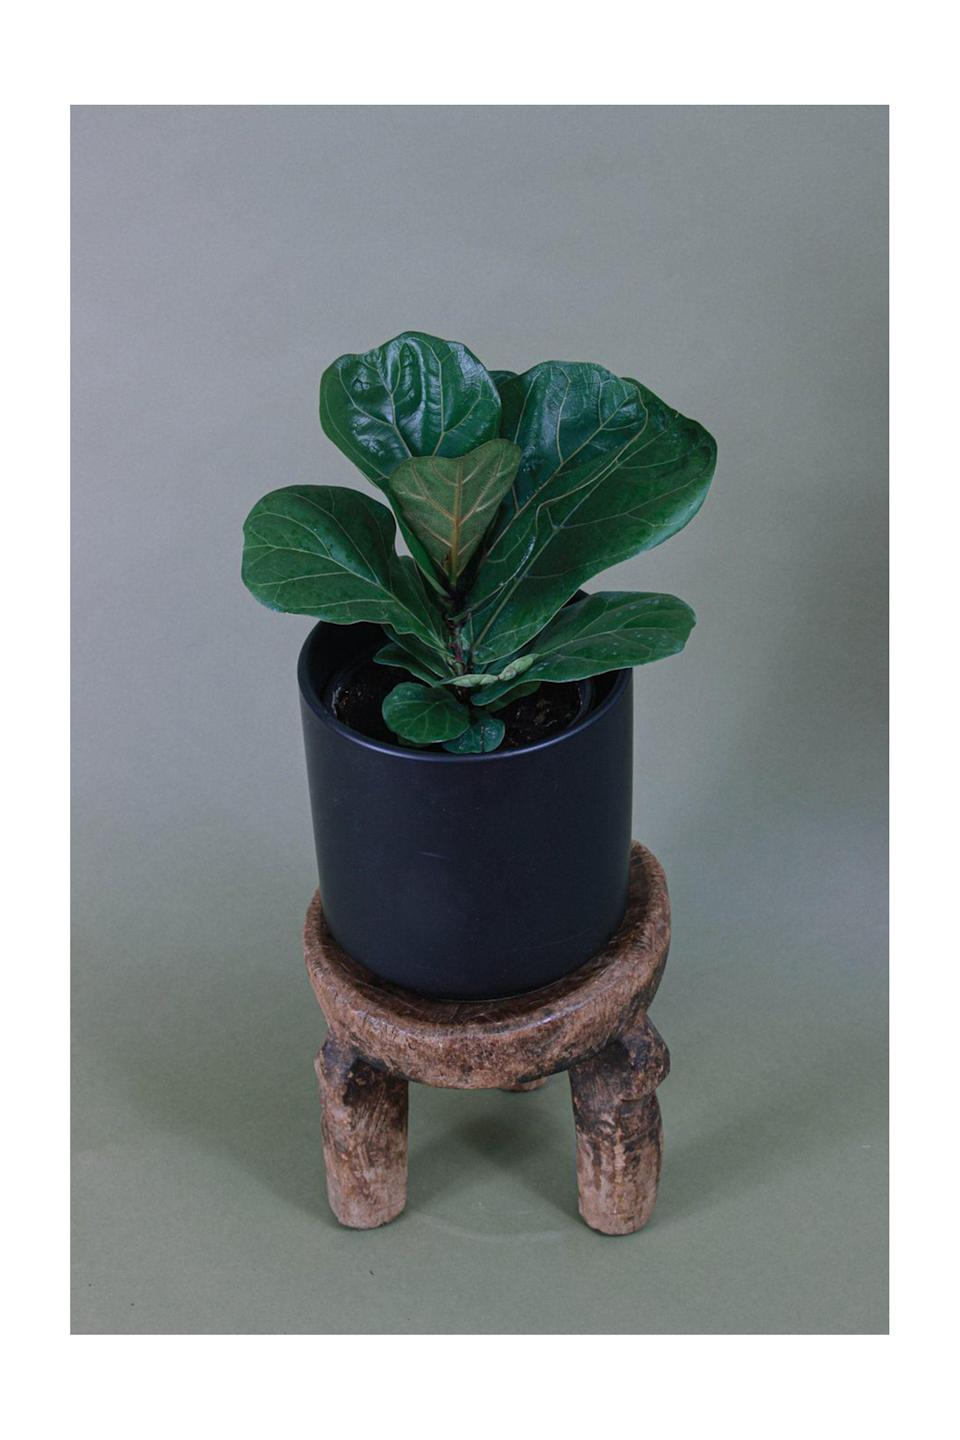 """<p><strong>Grounded</strong></p><p>grounded-plants.com</p><p><strong>$30.00</strong></p><p><a href=""""https://grounded-plants.com/products/fiddle-leaf-fig"""" rel=""""nofollow noopener"""" target=""""_blank"""" data-ylk=""""slk:Shop Now"""" class=""""link rapid-noclick-resp"""">Shop Now</a></p><p>Some partners might prefer plants over roses. For those green thumb cuties, Grounded is a great option. The indie shop aims to """"help you disconnect and decompress through the appreciation of plants,"""" and ships nationwide. </p>"""